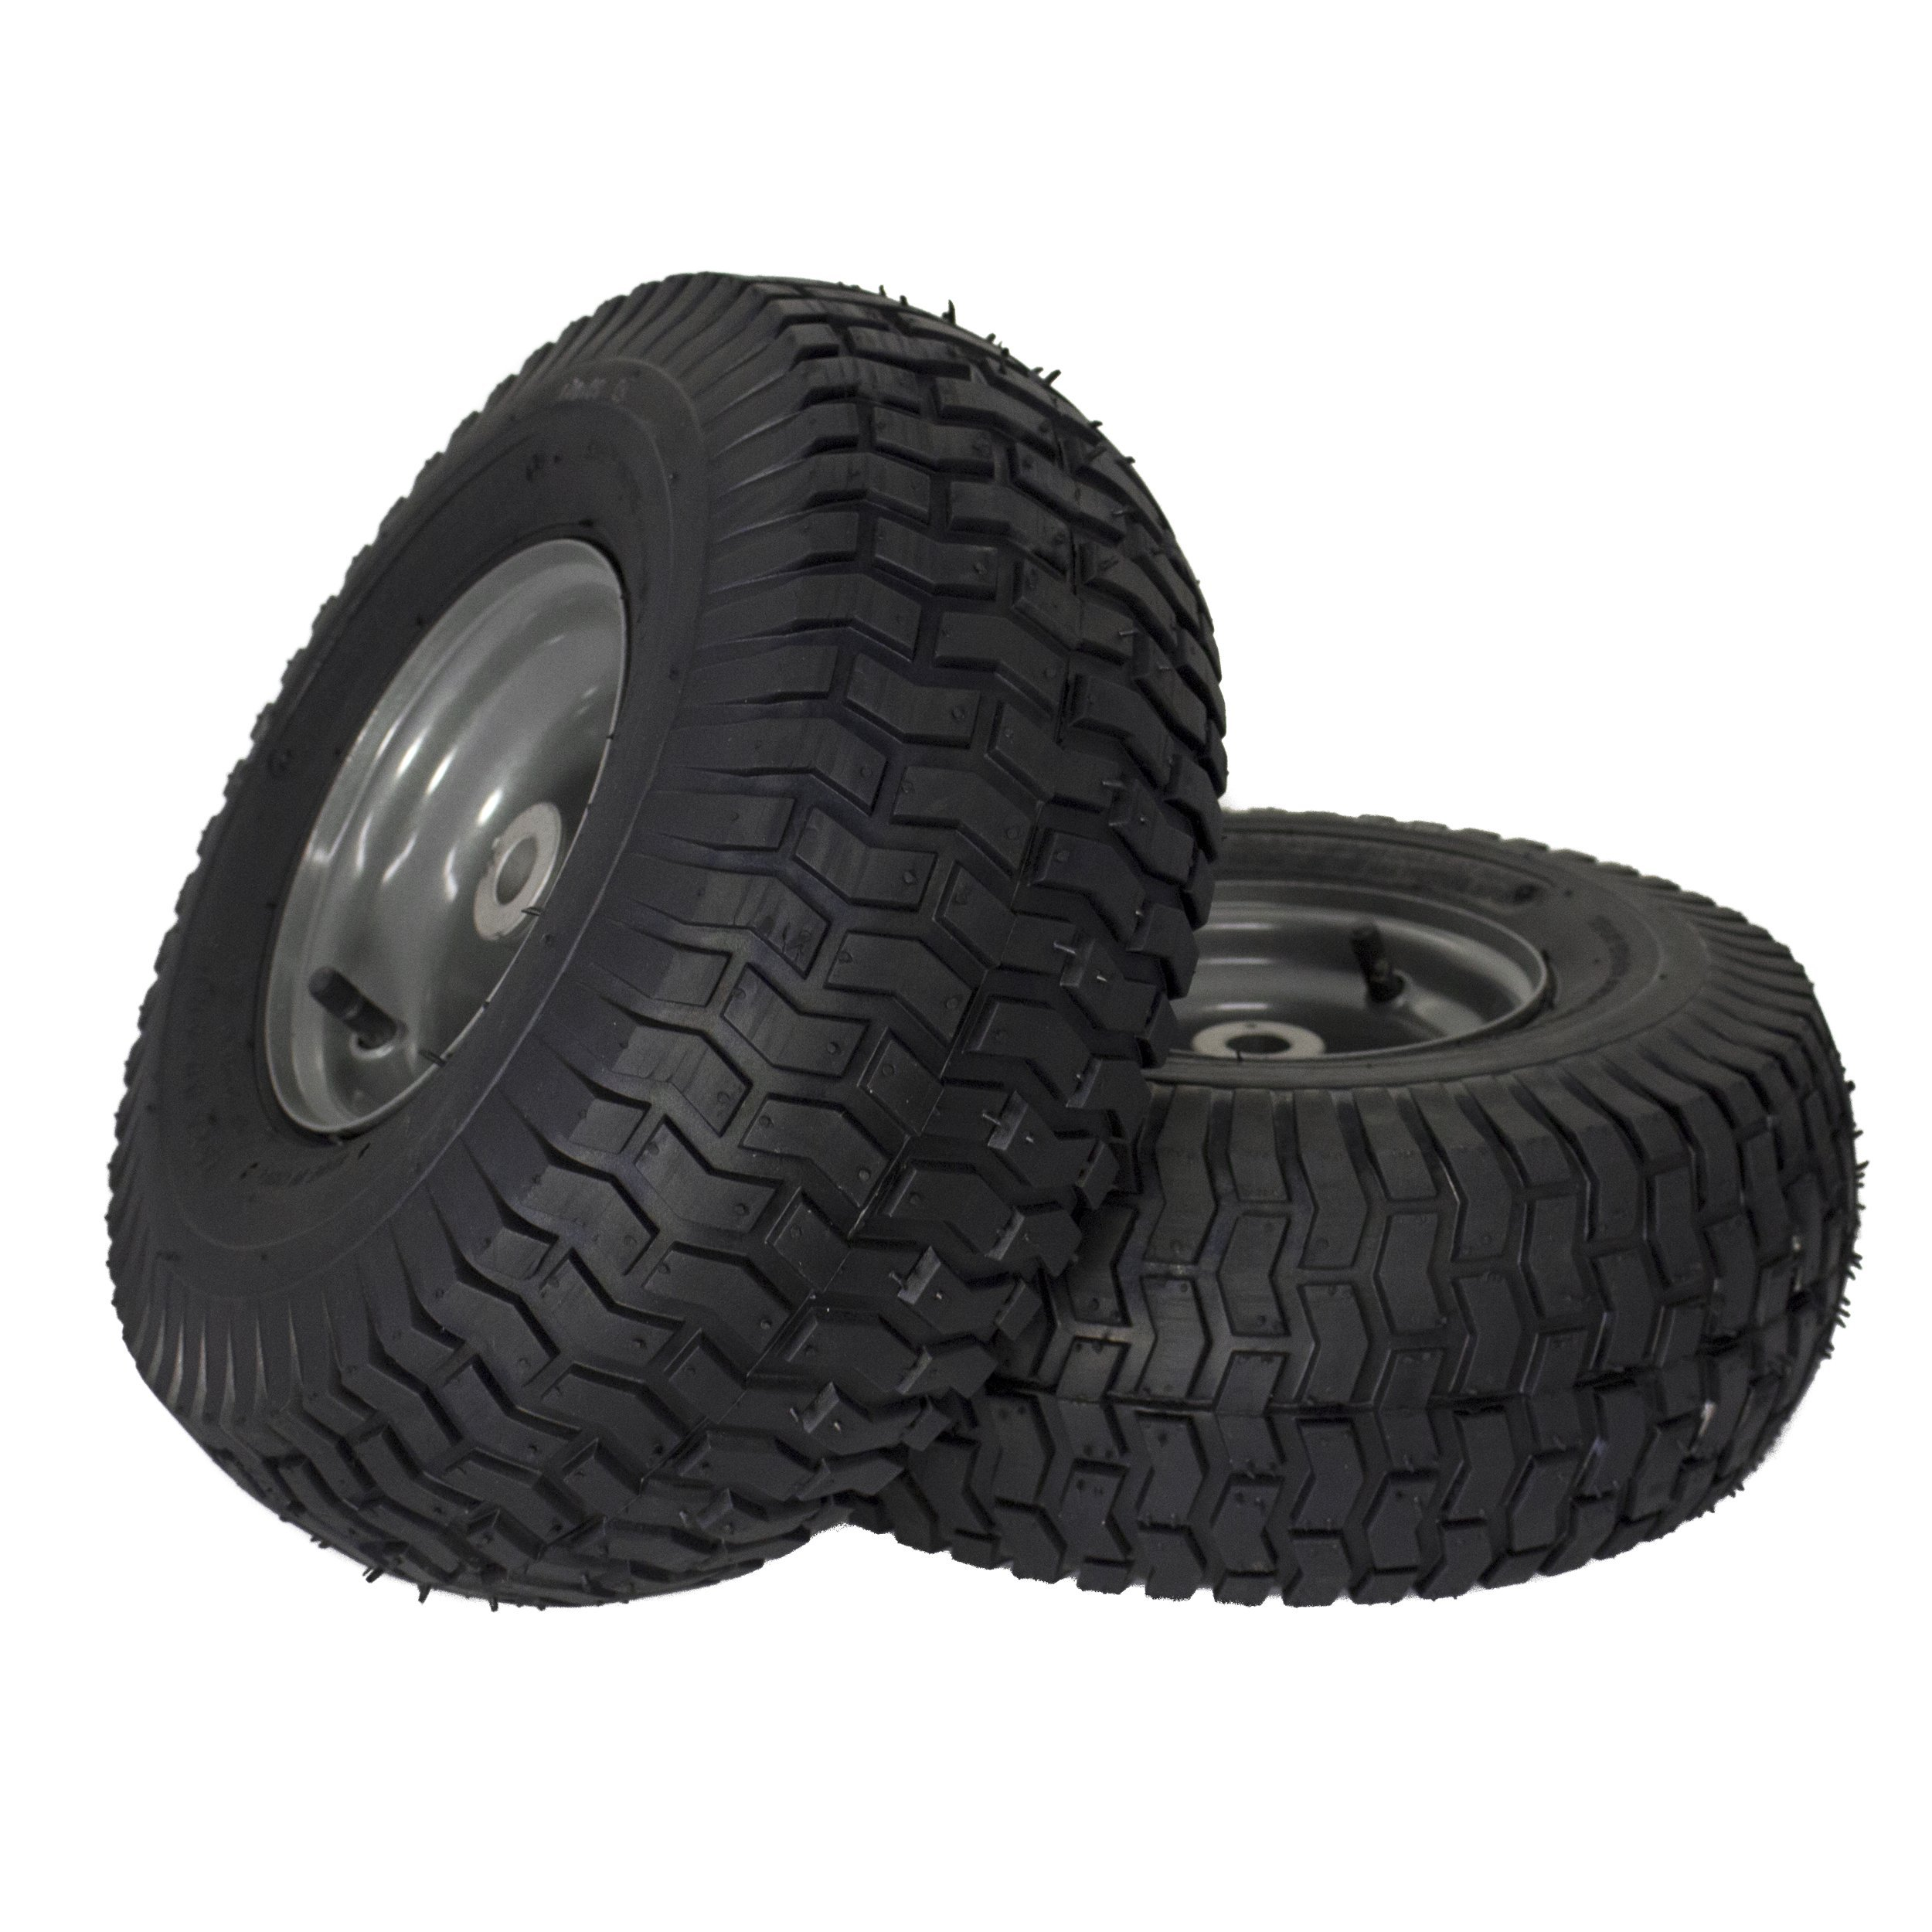 MARASTAR 21446-2PK 15x6.00-6'' Front Tire Assembly Replacement-Craftsman Mower, Pack of 2 by MARASTAR